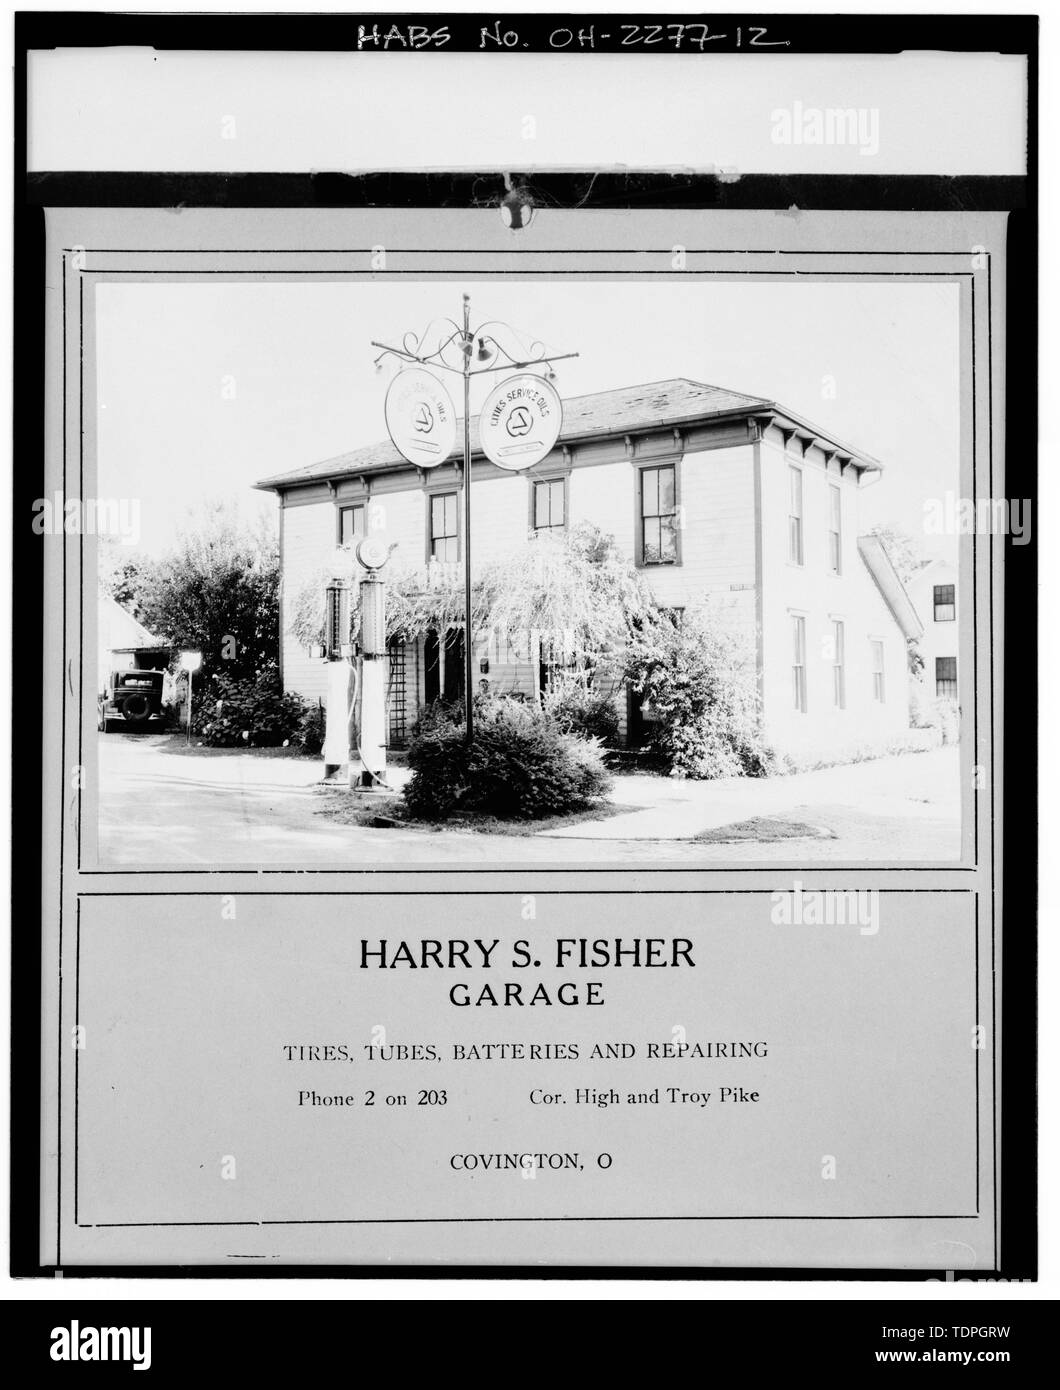 and calender (property of Carolyn Blankenship, Covington, Miami County, Ohio), photographer and date unknown, circa- 1935. VIEW SOUTHEAST, NORTH FRONT AND WEST SIDE, SHOWS HARRY S. FISHER - Martin Steinhilber House, 402 South High Street, Covington, Miami County, OH - Stock Image